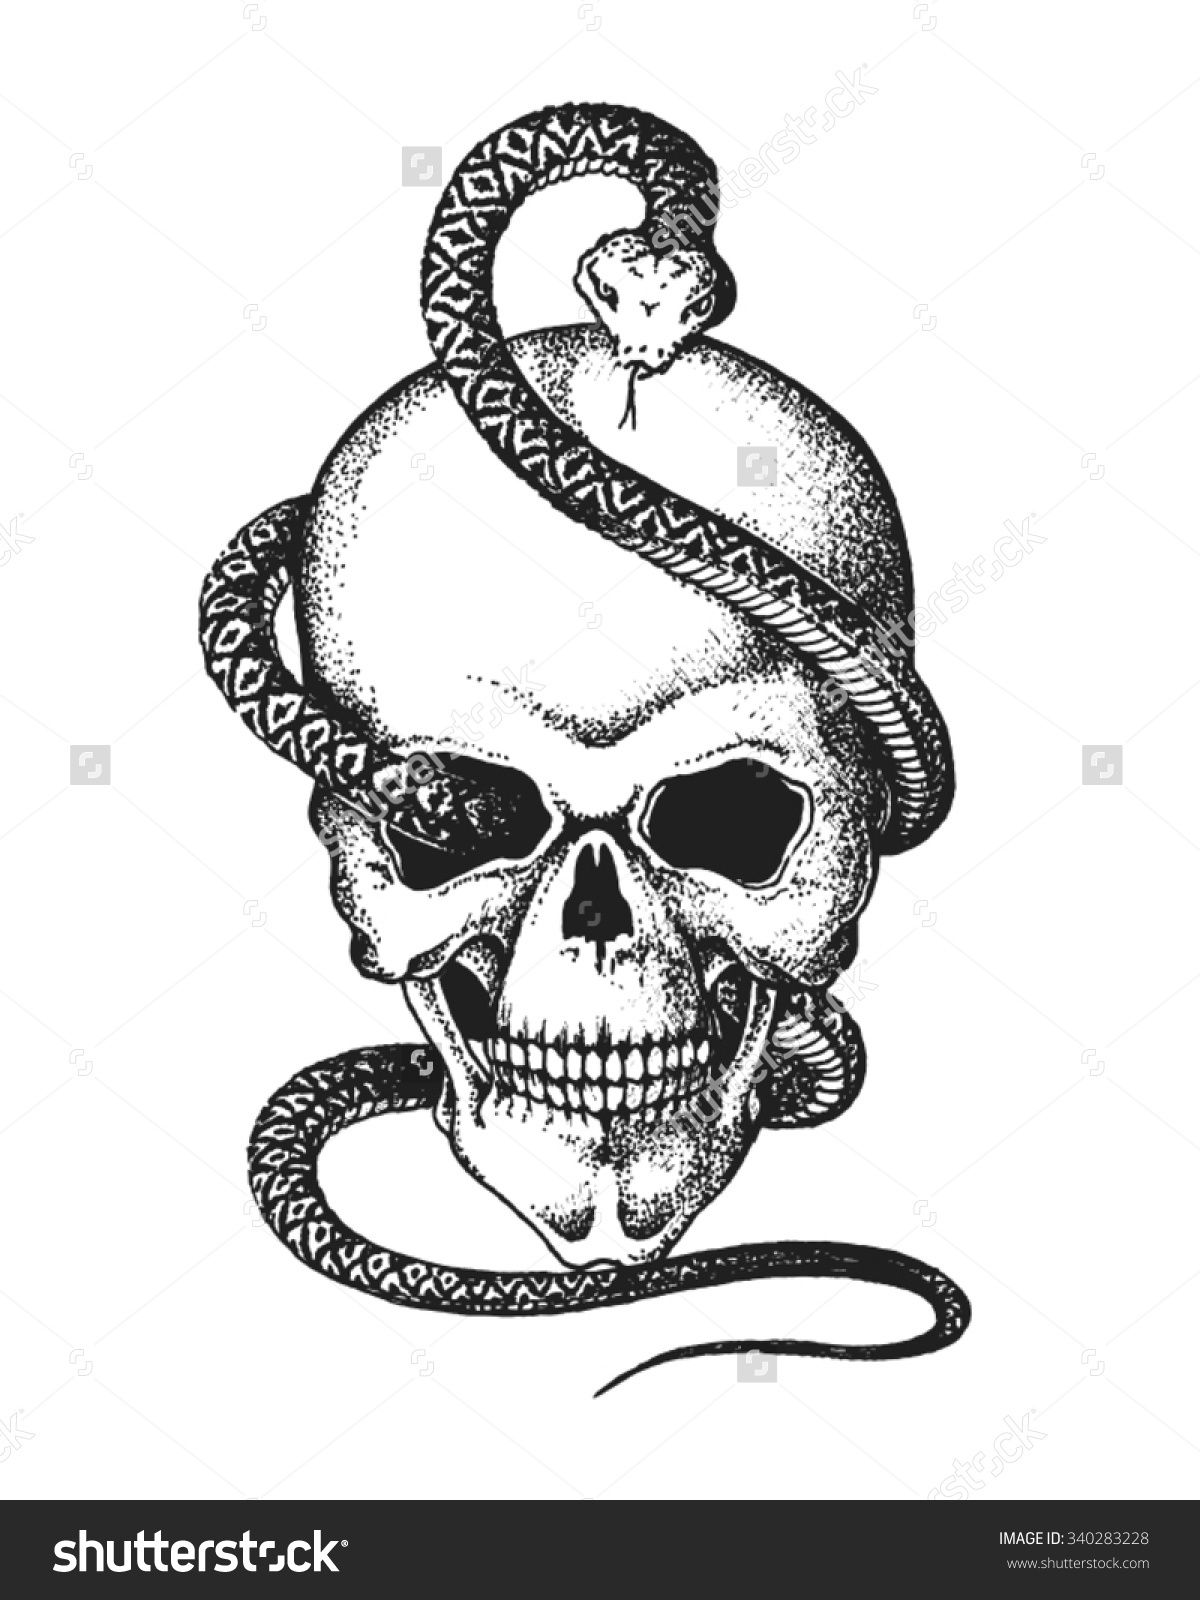 Modify and vectorize this as possible red vipers vehicle or hand drawn human skull entwined by snake vector illustration buy this stock vector on shutterstock find other images thecheapjerseys Choice Image